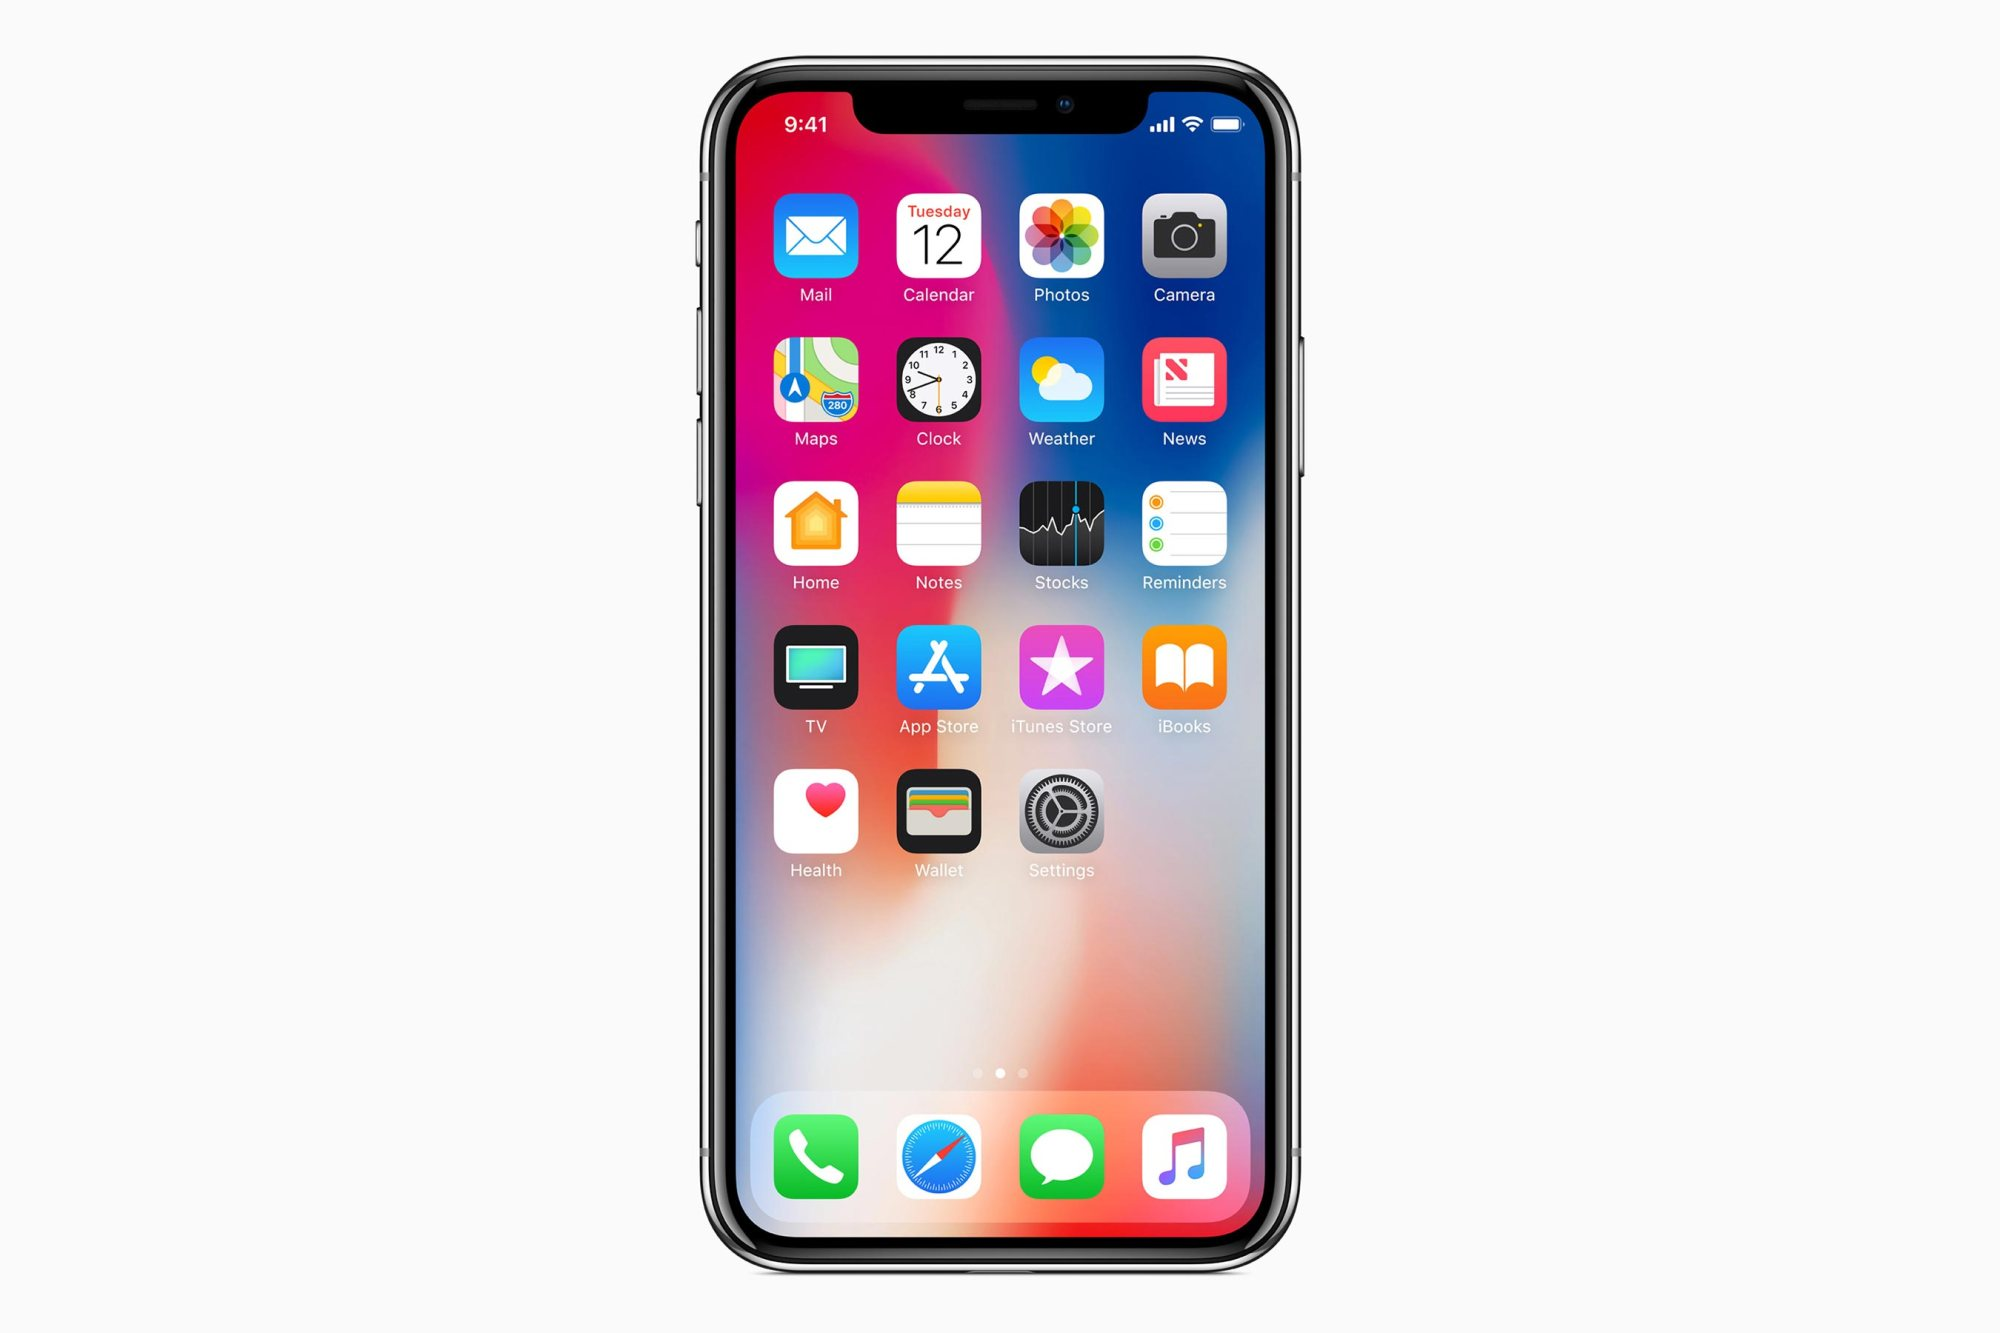 iphonex_front_homescreen